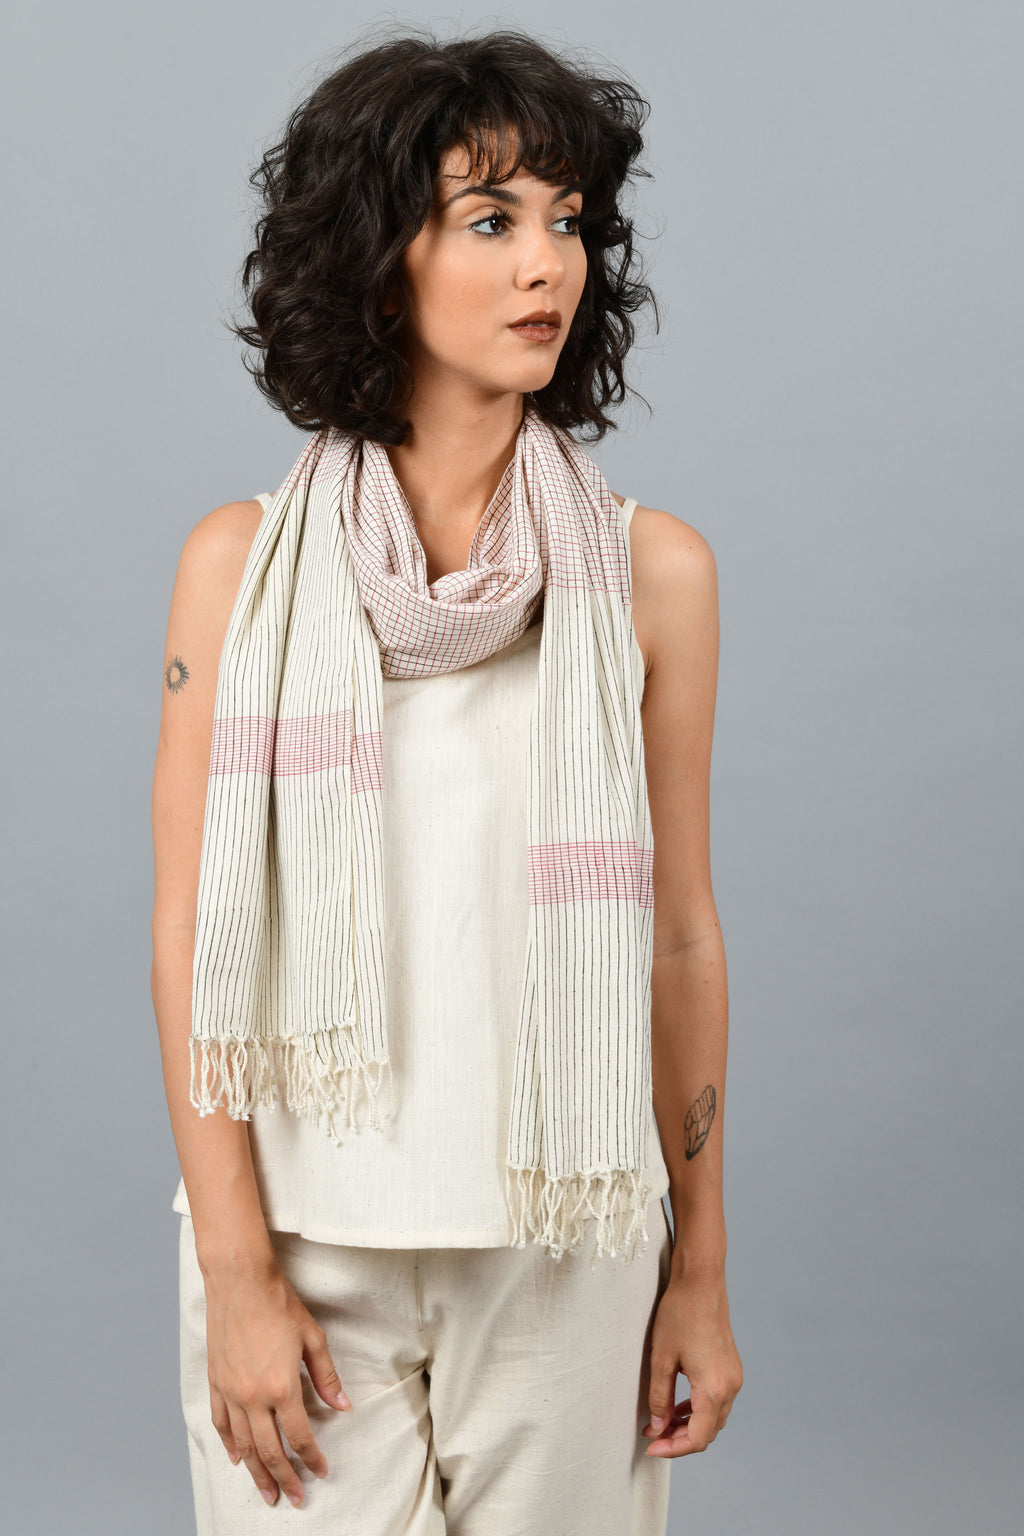 A female womenswear fashion Model wearing a minimally designed off-white homespun and handwoven fine khadi cotton stole by Cotton Rack printed with read and blue stripes around her neck